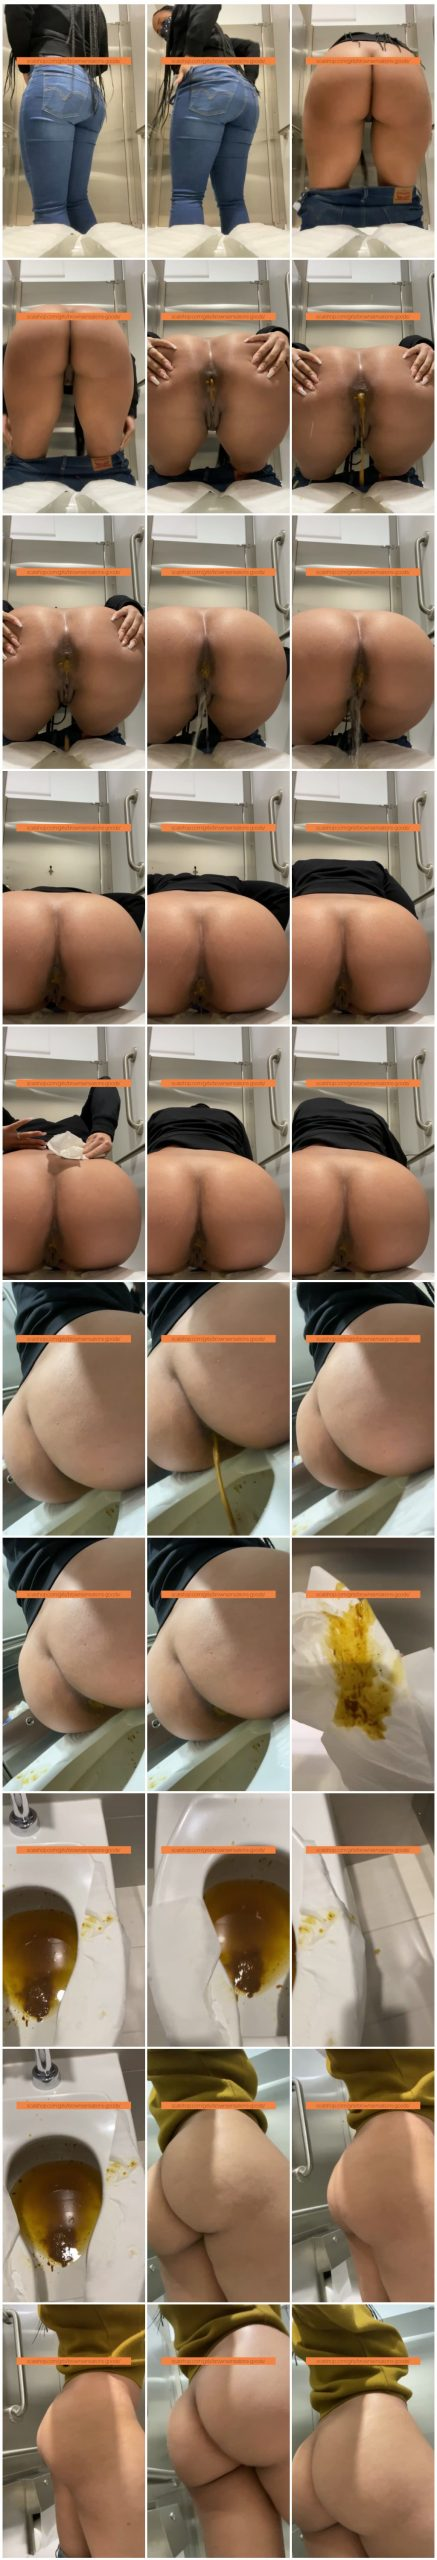 Brownsensations Double Toilet Shits Scat solo shit defecation Pissing Big Shit Dirty Ass Masturbation thumb scaled - Brownsensations - Double Toilet Shits [Scat solo, shit, defecation, Pissing, Big Shit, Dirty Ass, Masturbation]